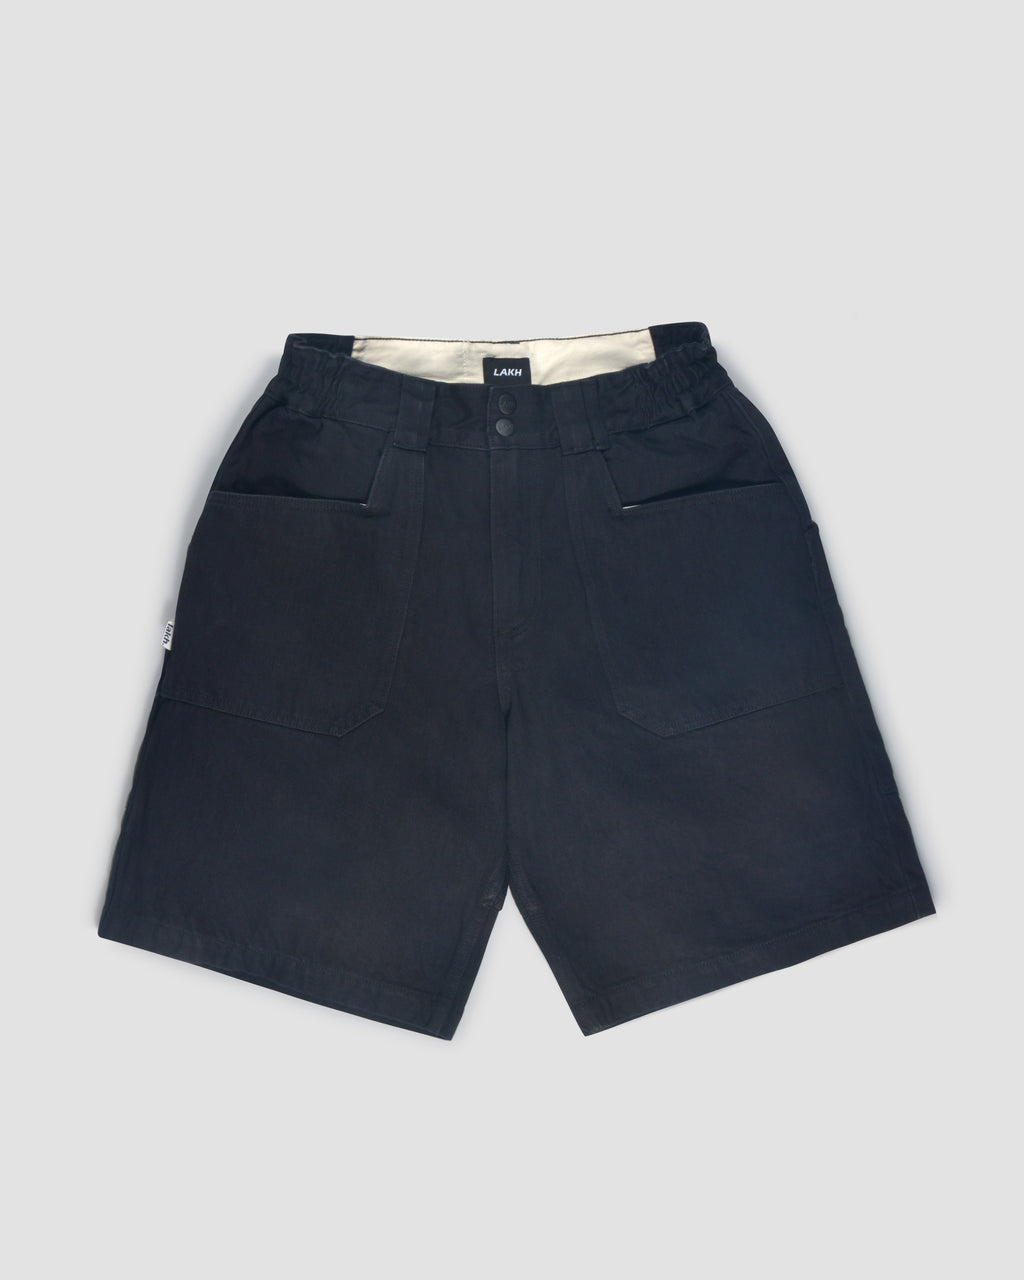 Fatigue Shorts - Denim Black